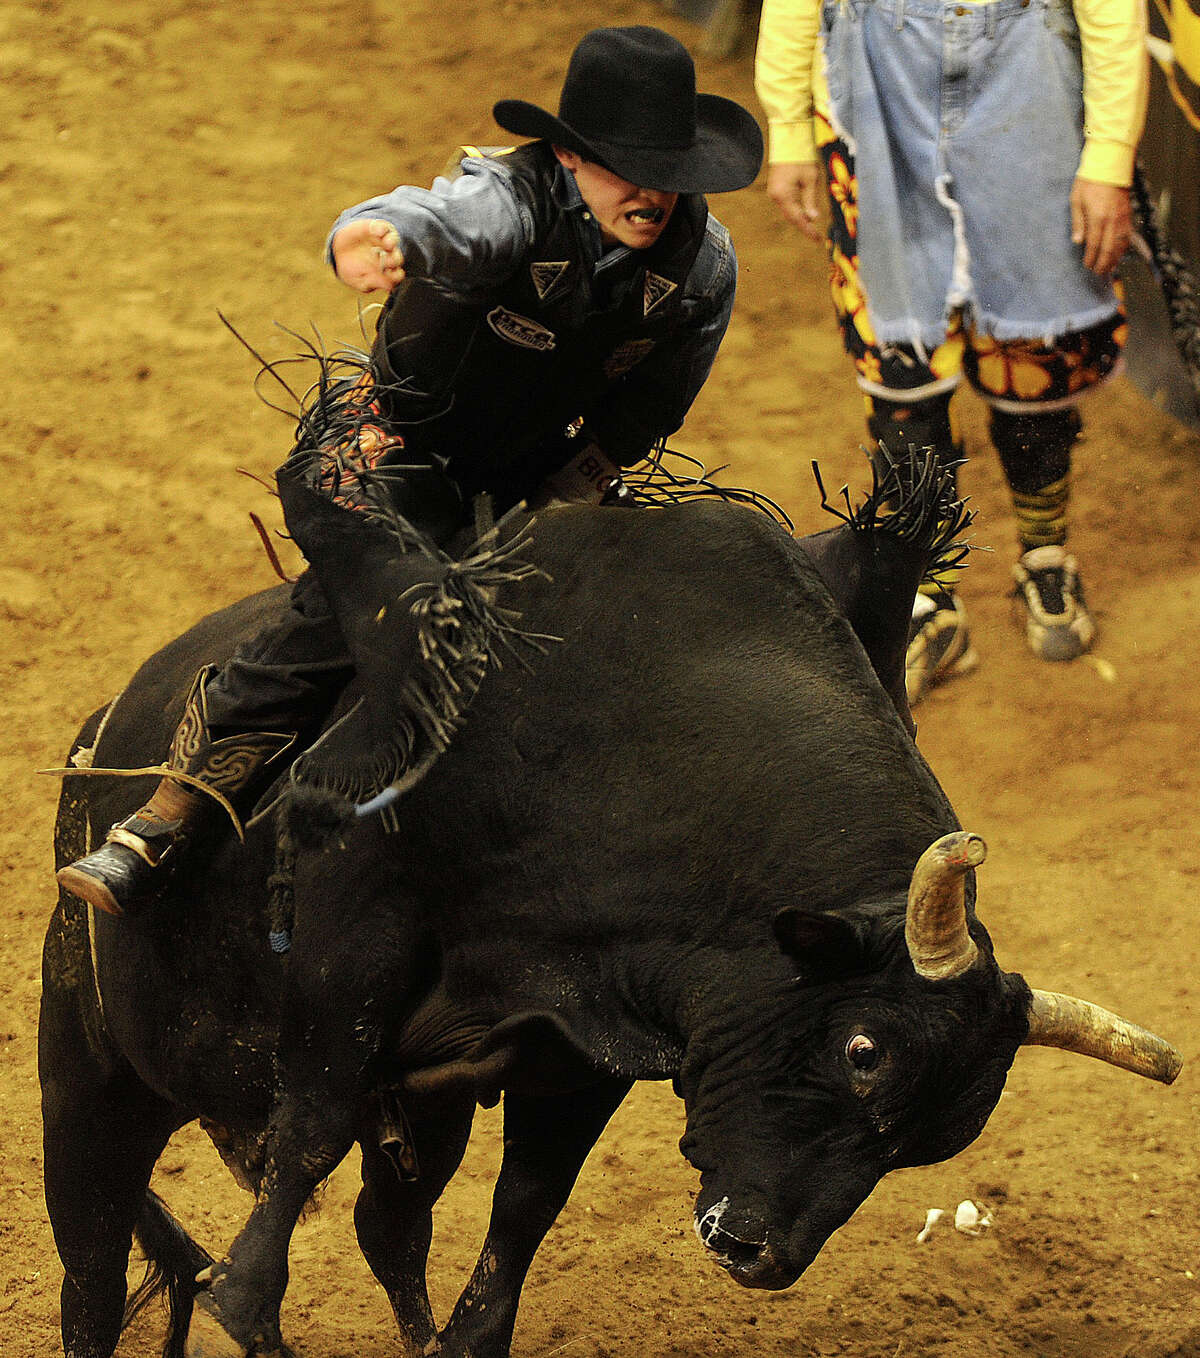 Jacob O'Mara from Prairieville, La., wins the bull riding competition by being the only cowboy stay on his bull for eight seconds during the matinee competition at the San Antonio Stock Show & Rodeo on Saturday, Feb. 12, 2011.